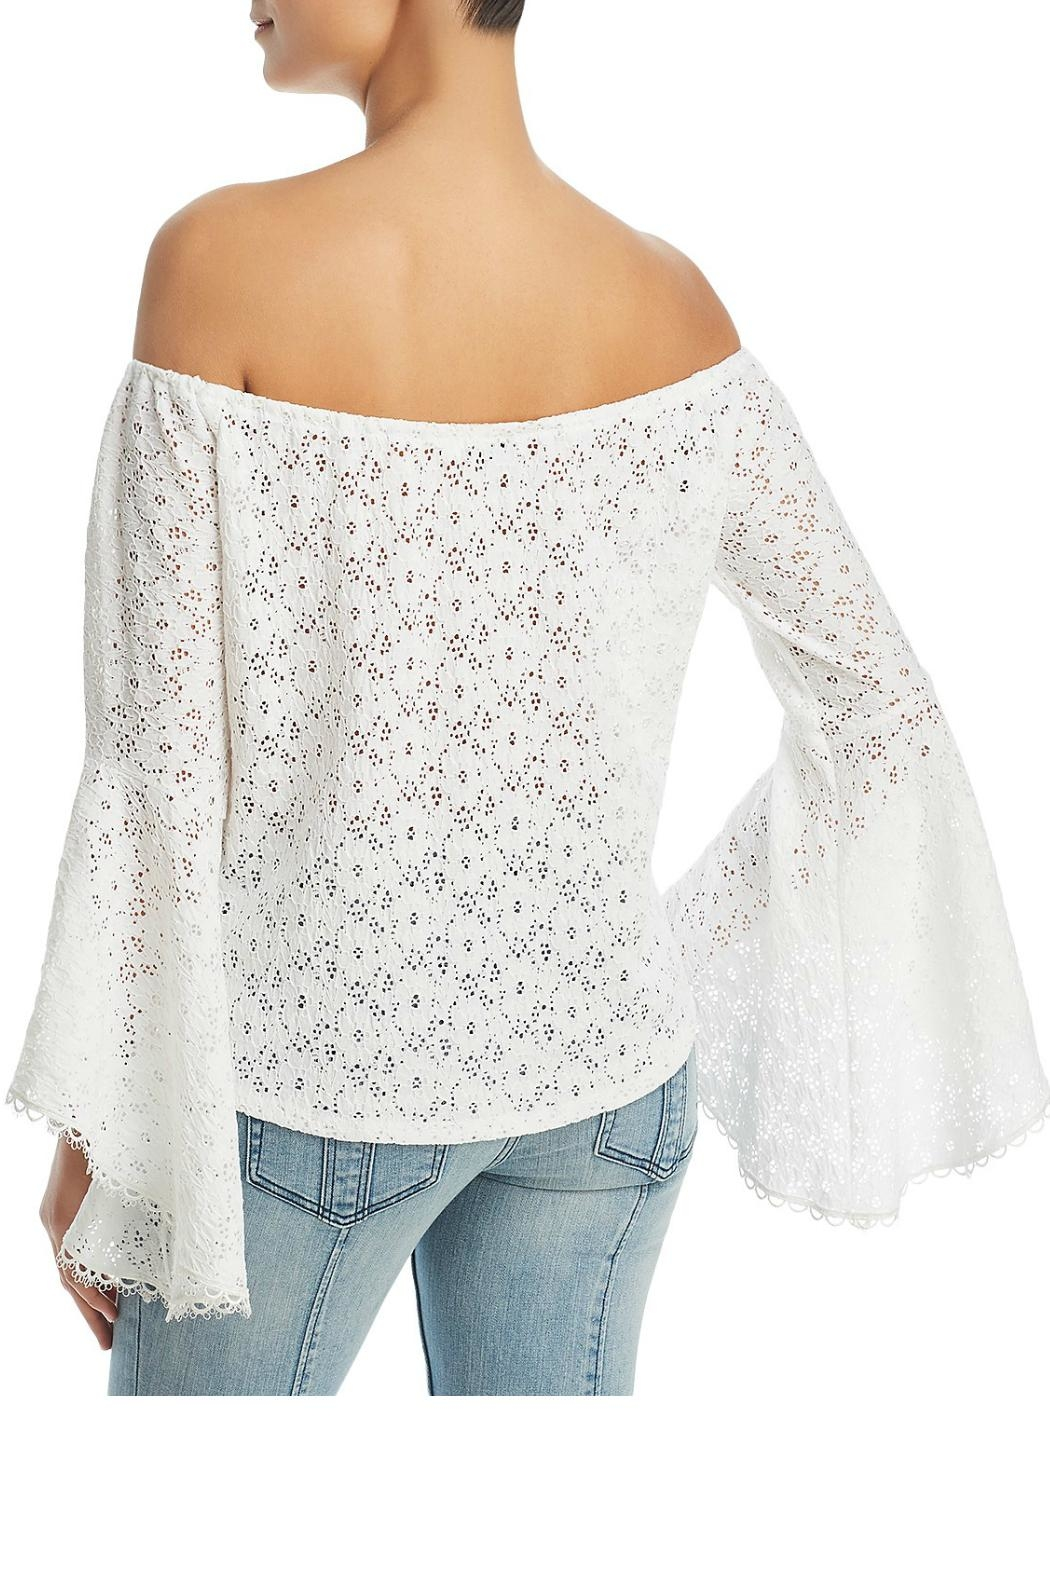 Red Haute Lace Off-The-Shoulder Top - Front Full Image